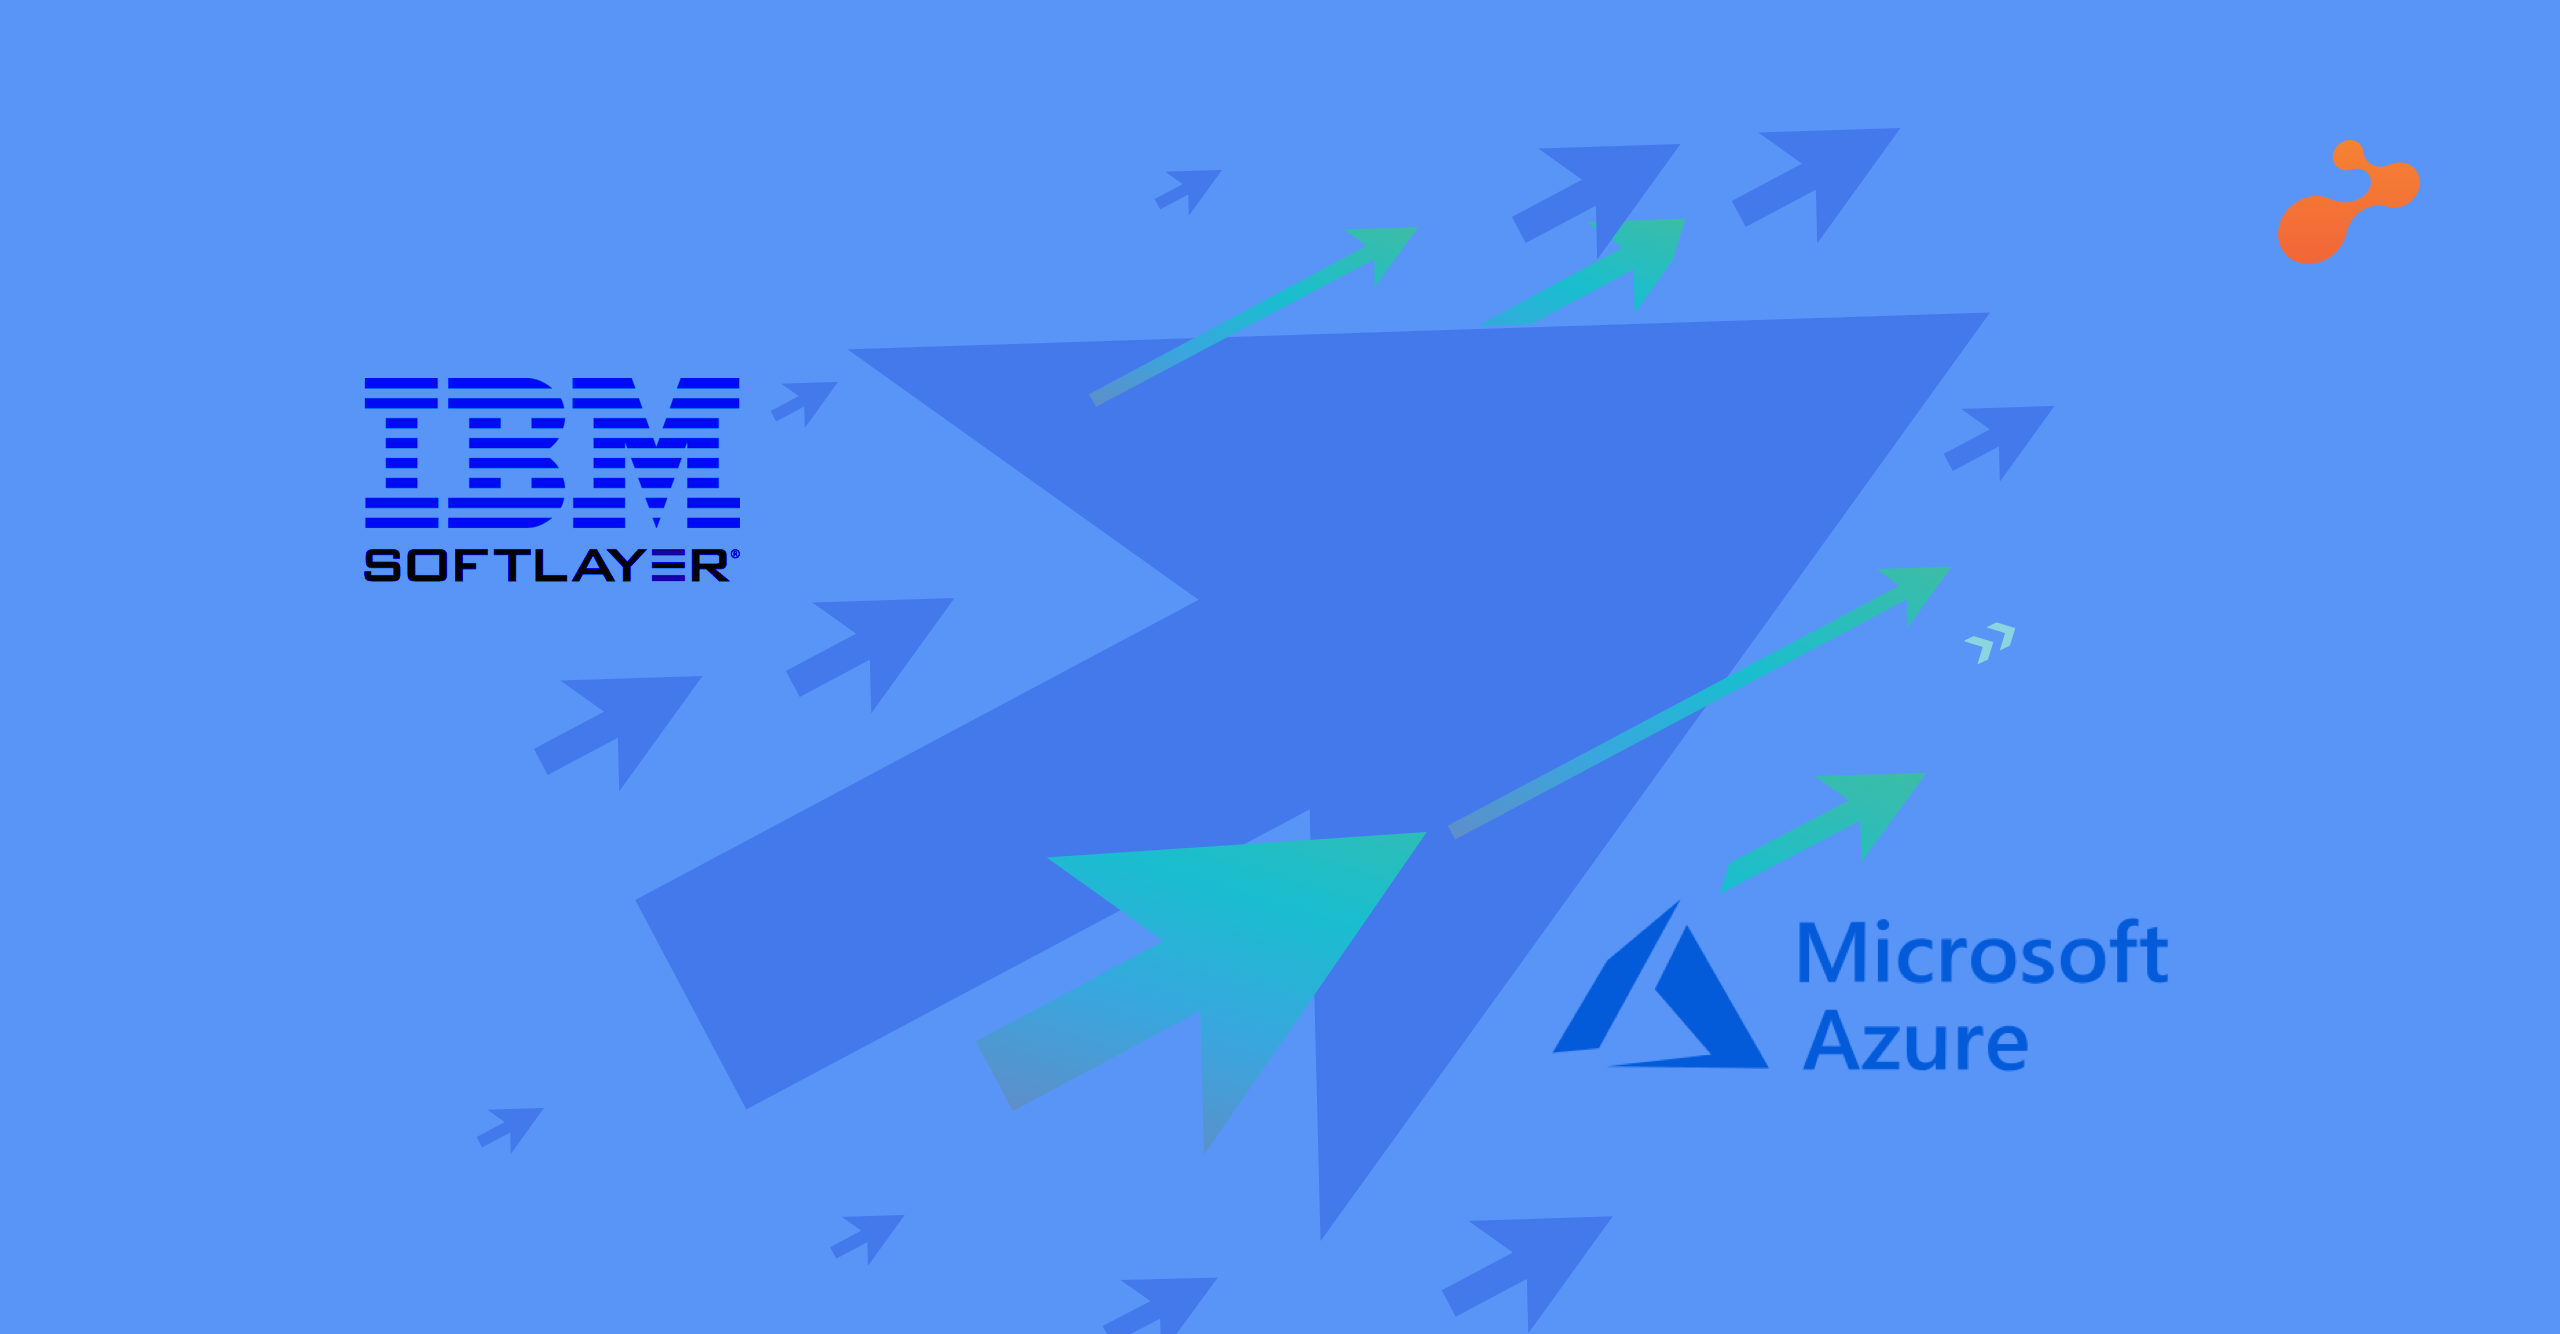 A success story of cloud migration from IBM SoftLayer to Microsoft Azure